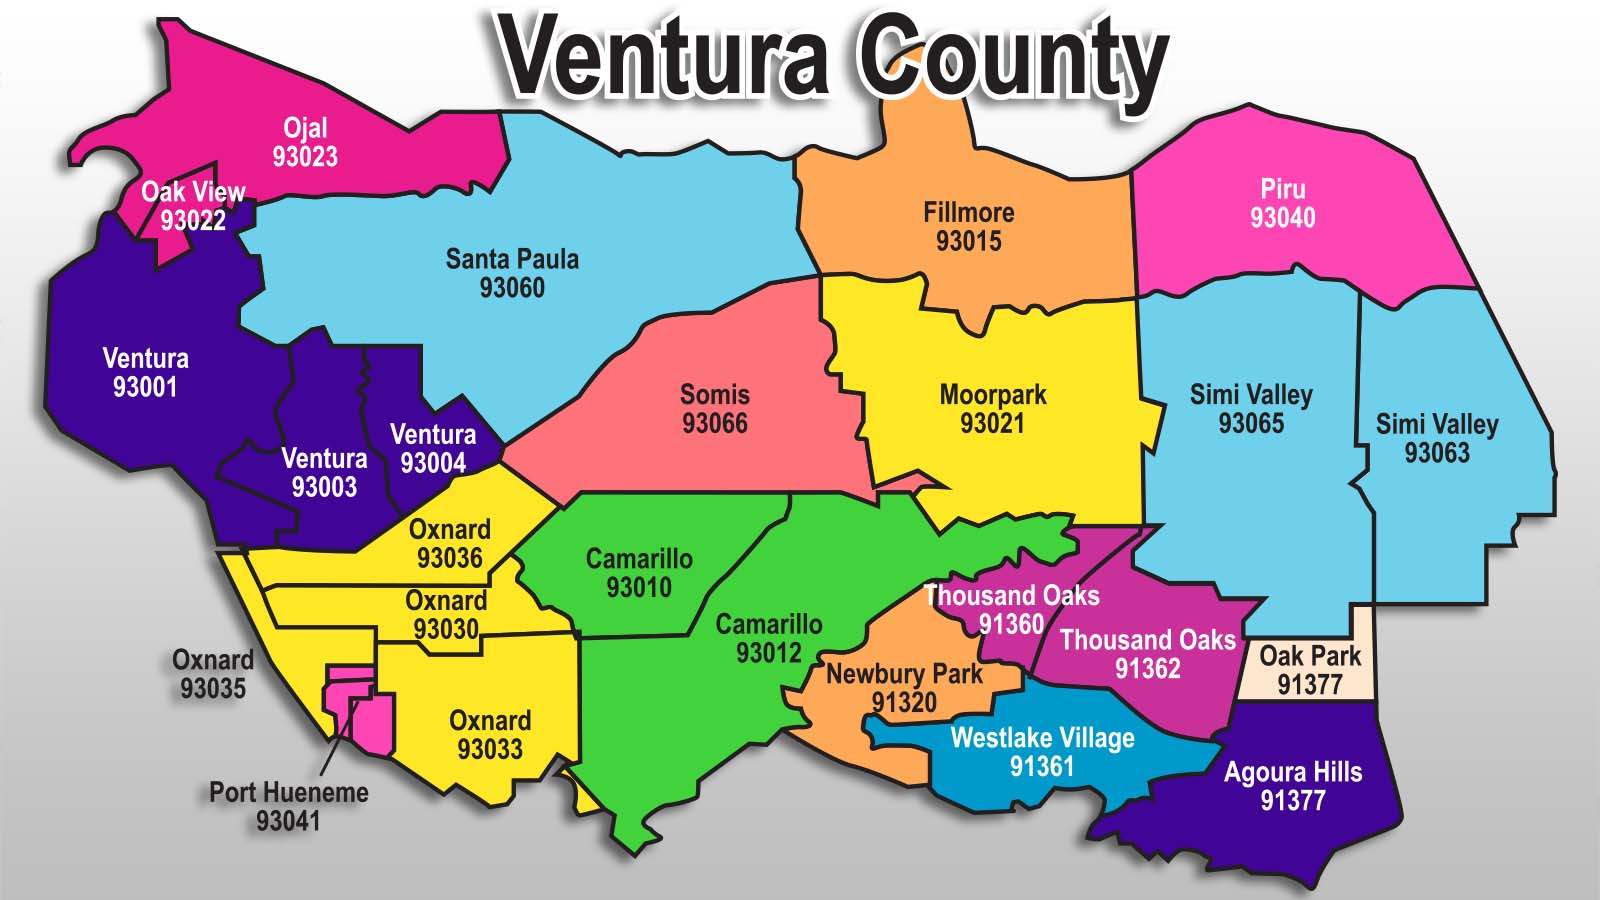 Ventura County Property Infirmation